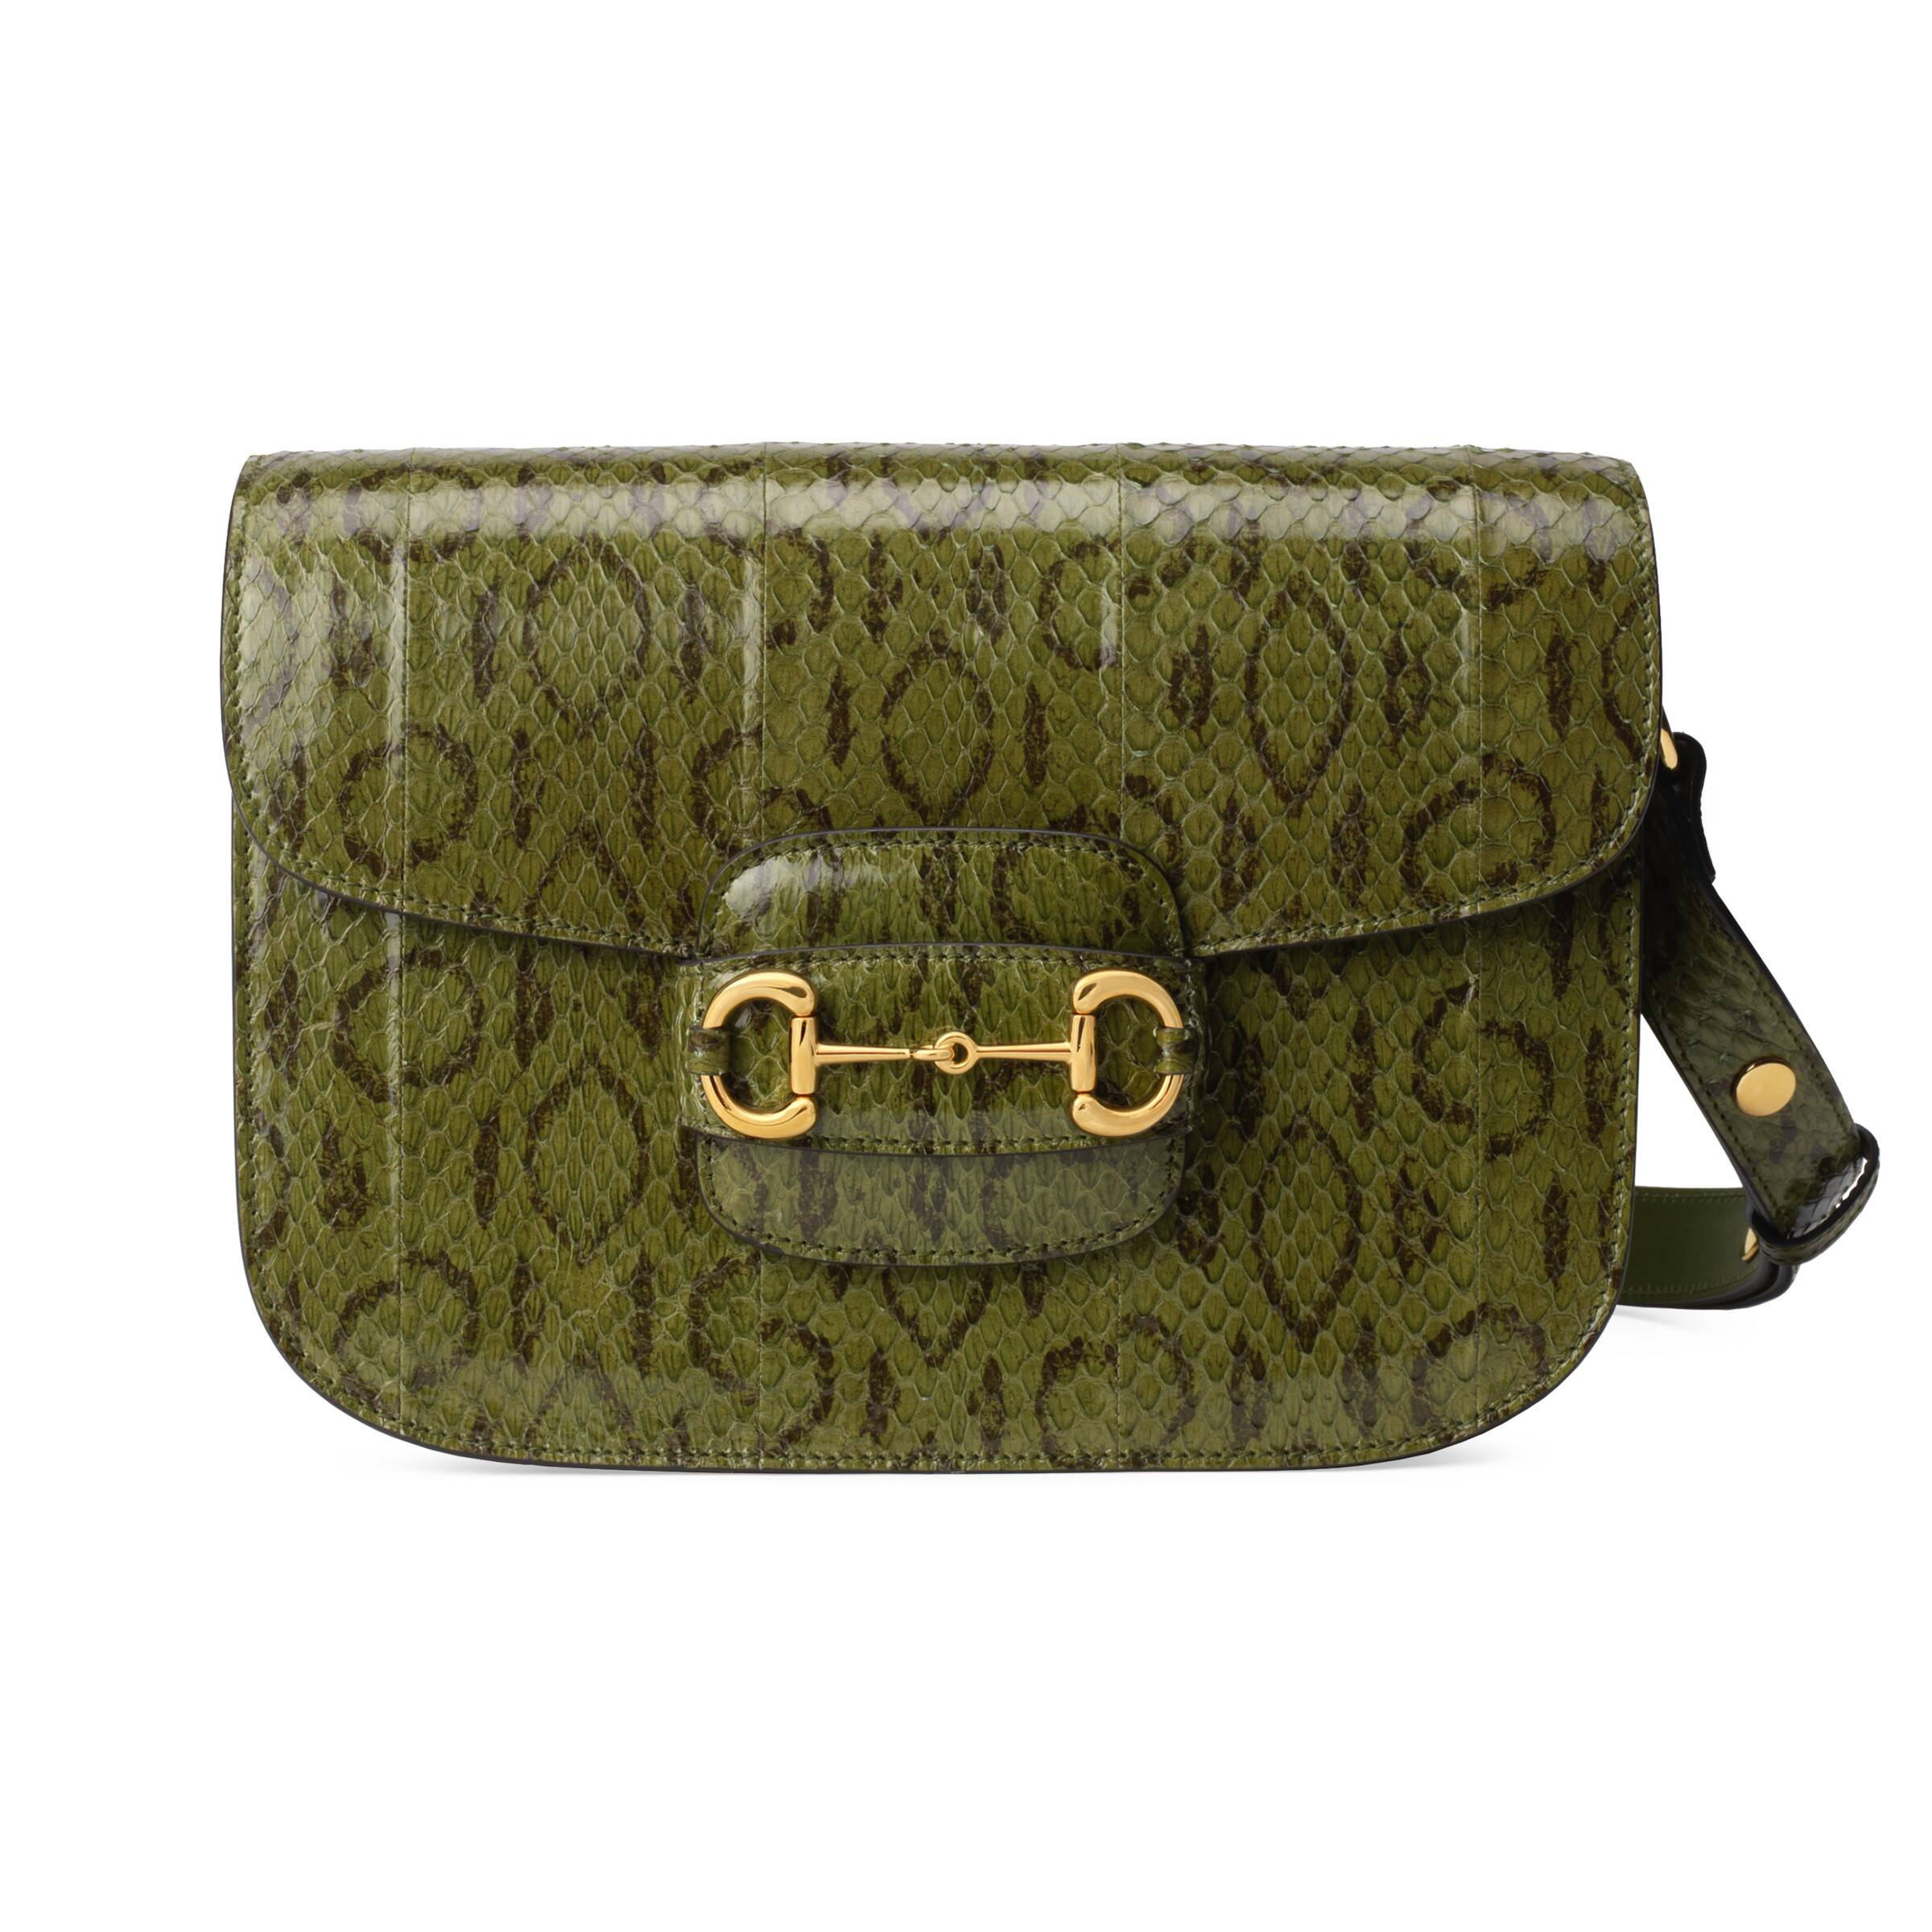 Gucci Horsebit 1955 snakeskin shoulder bag